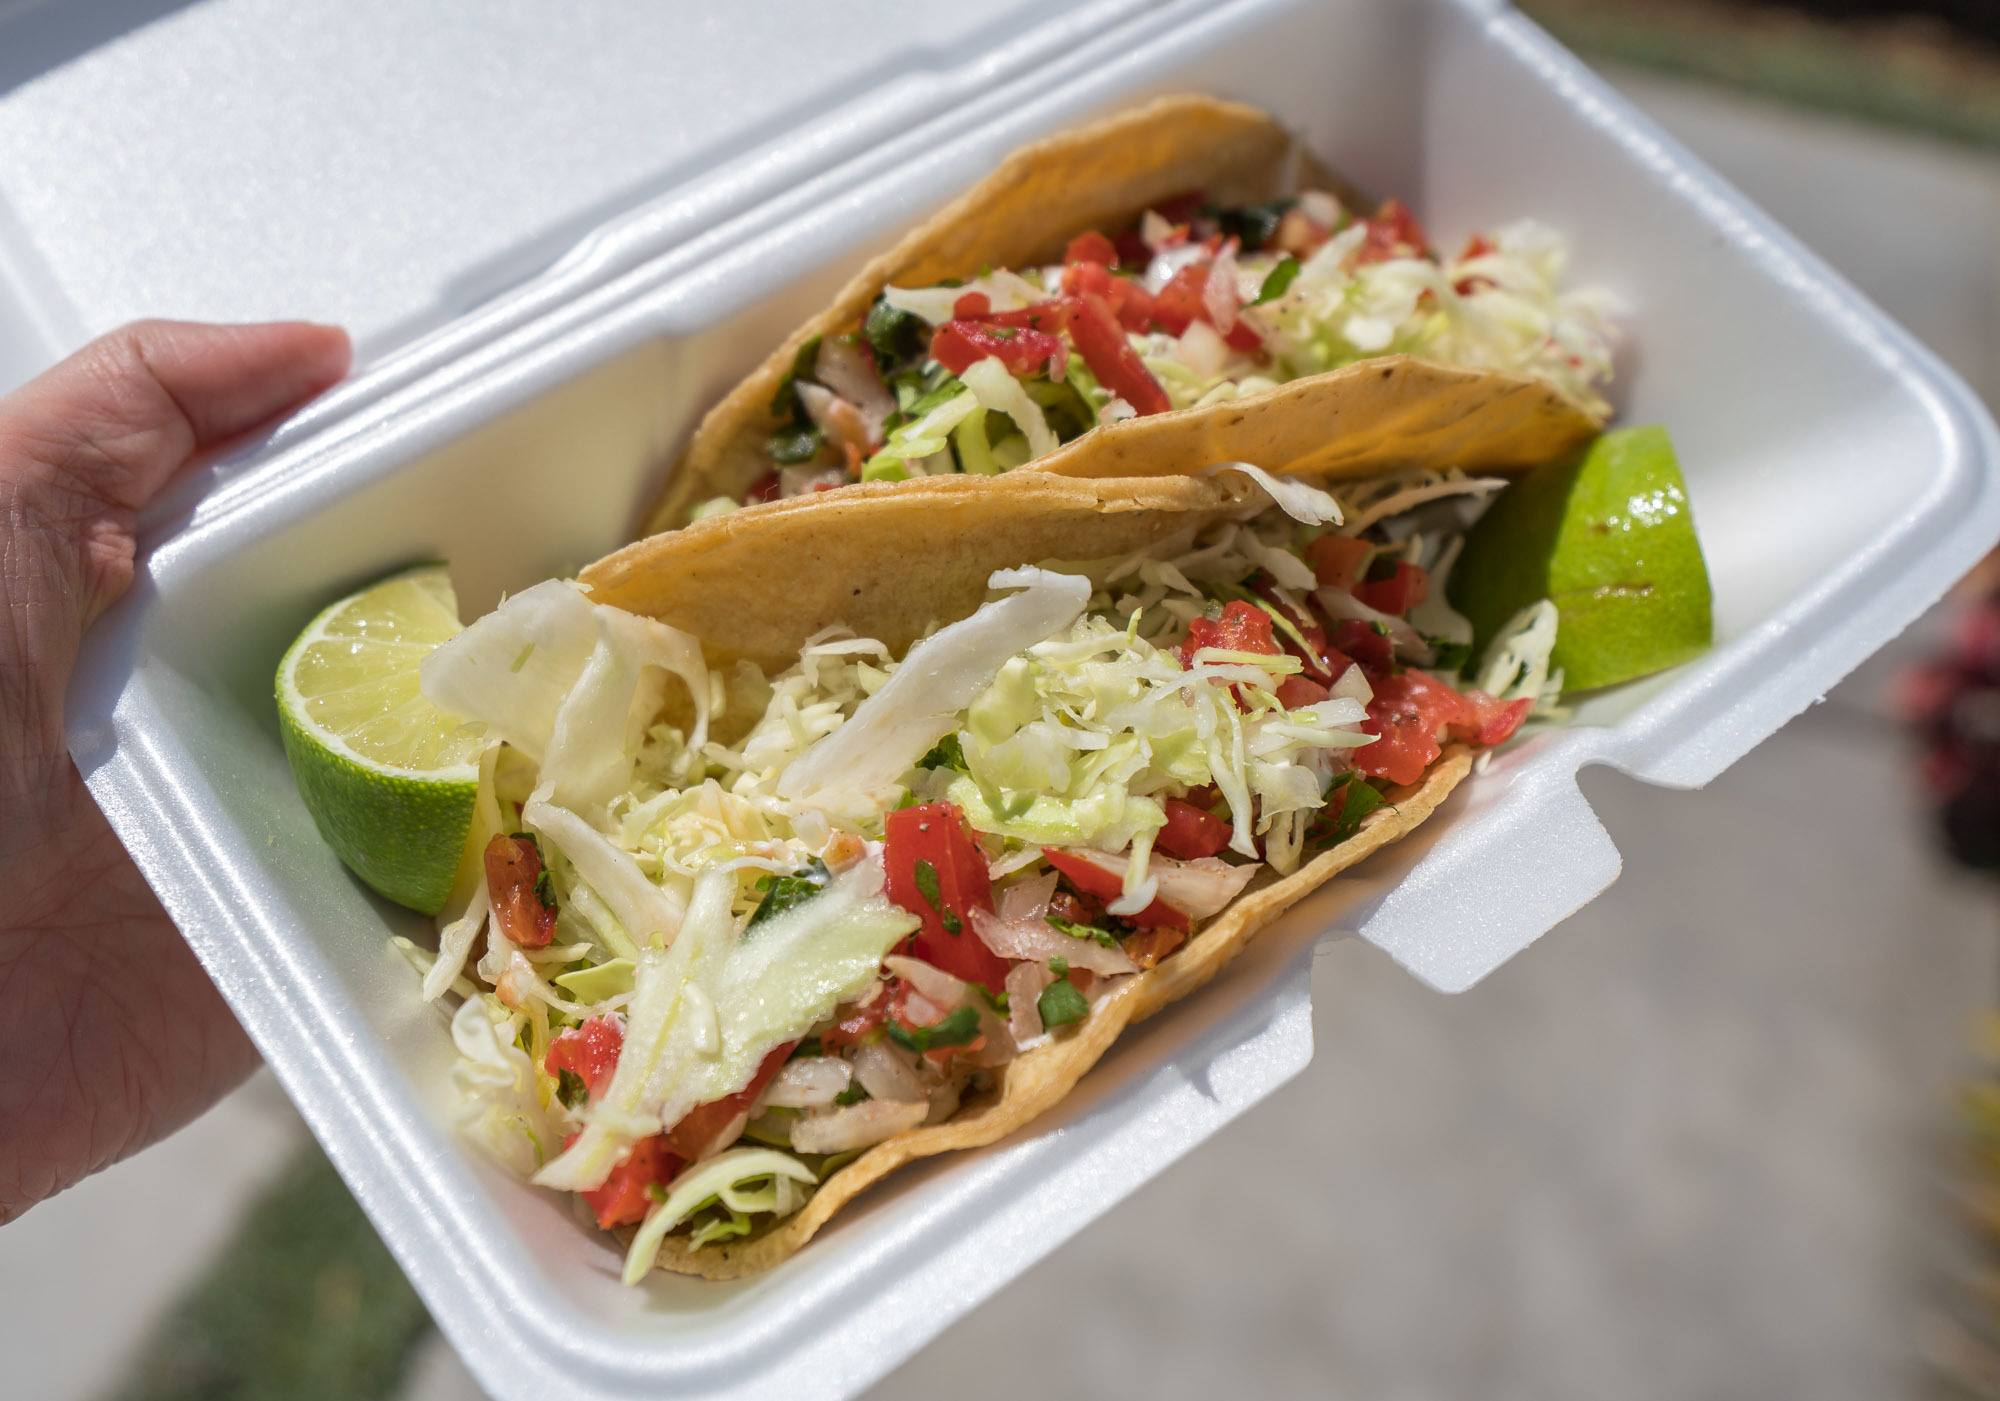 Taco Surf PB has some of the best fish tacos in Pacific Beach